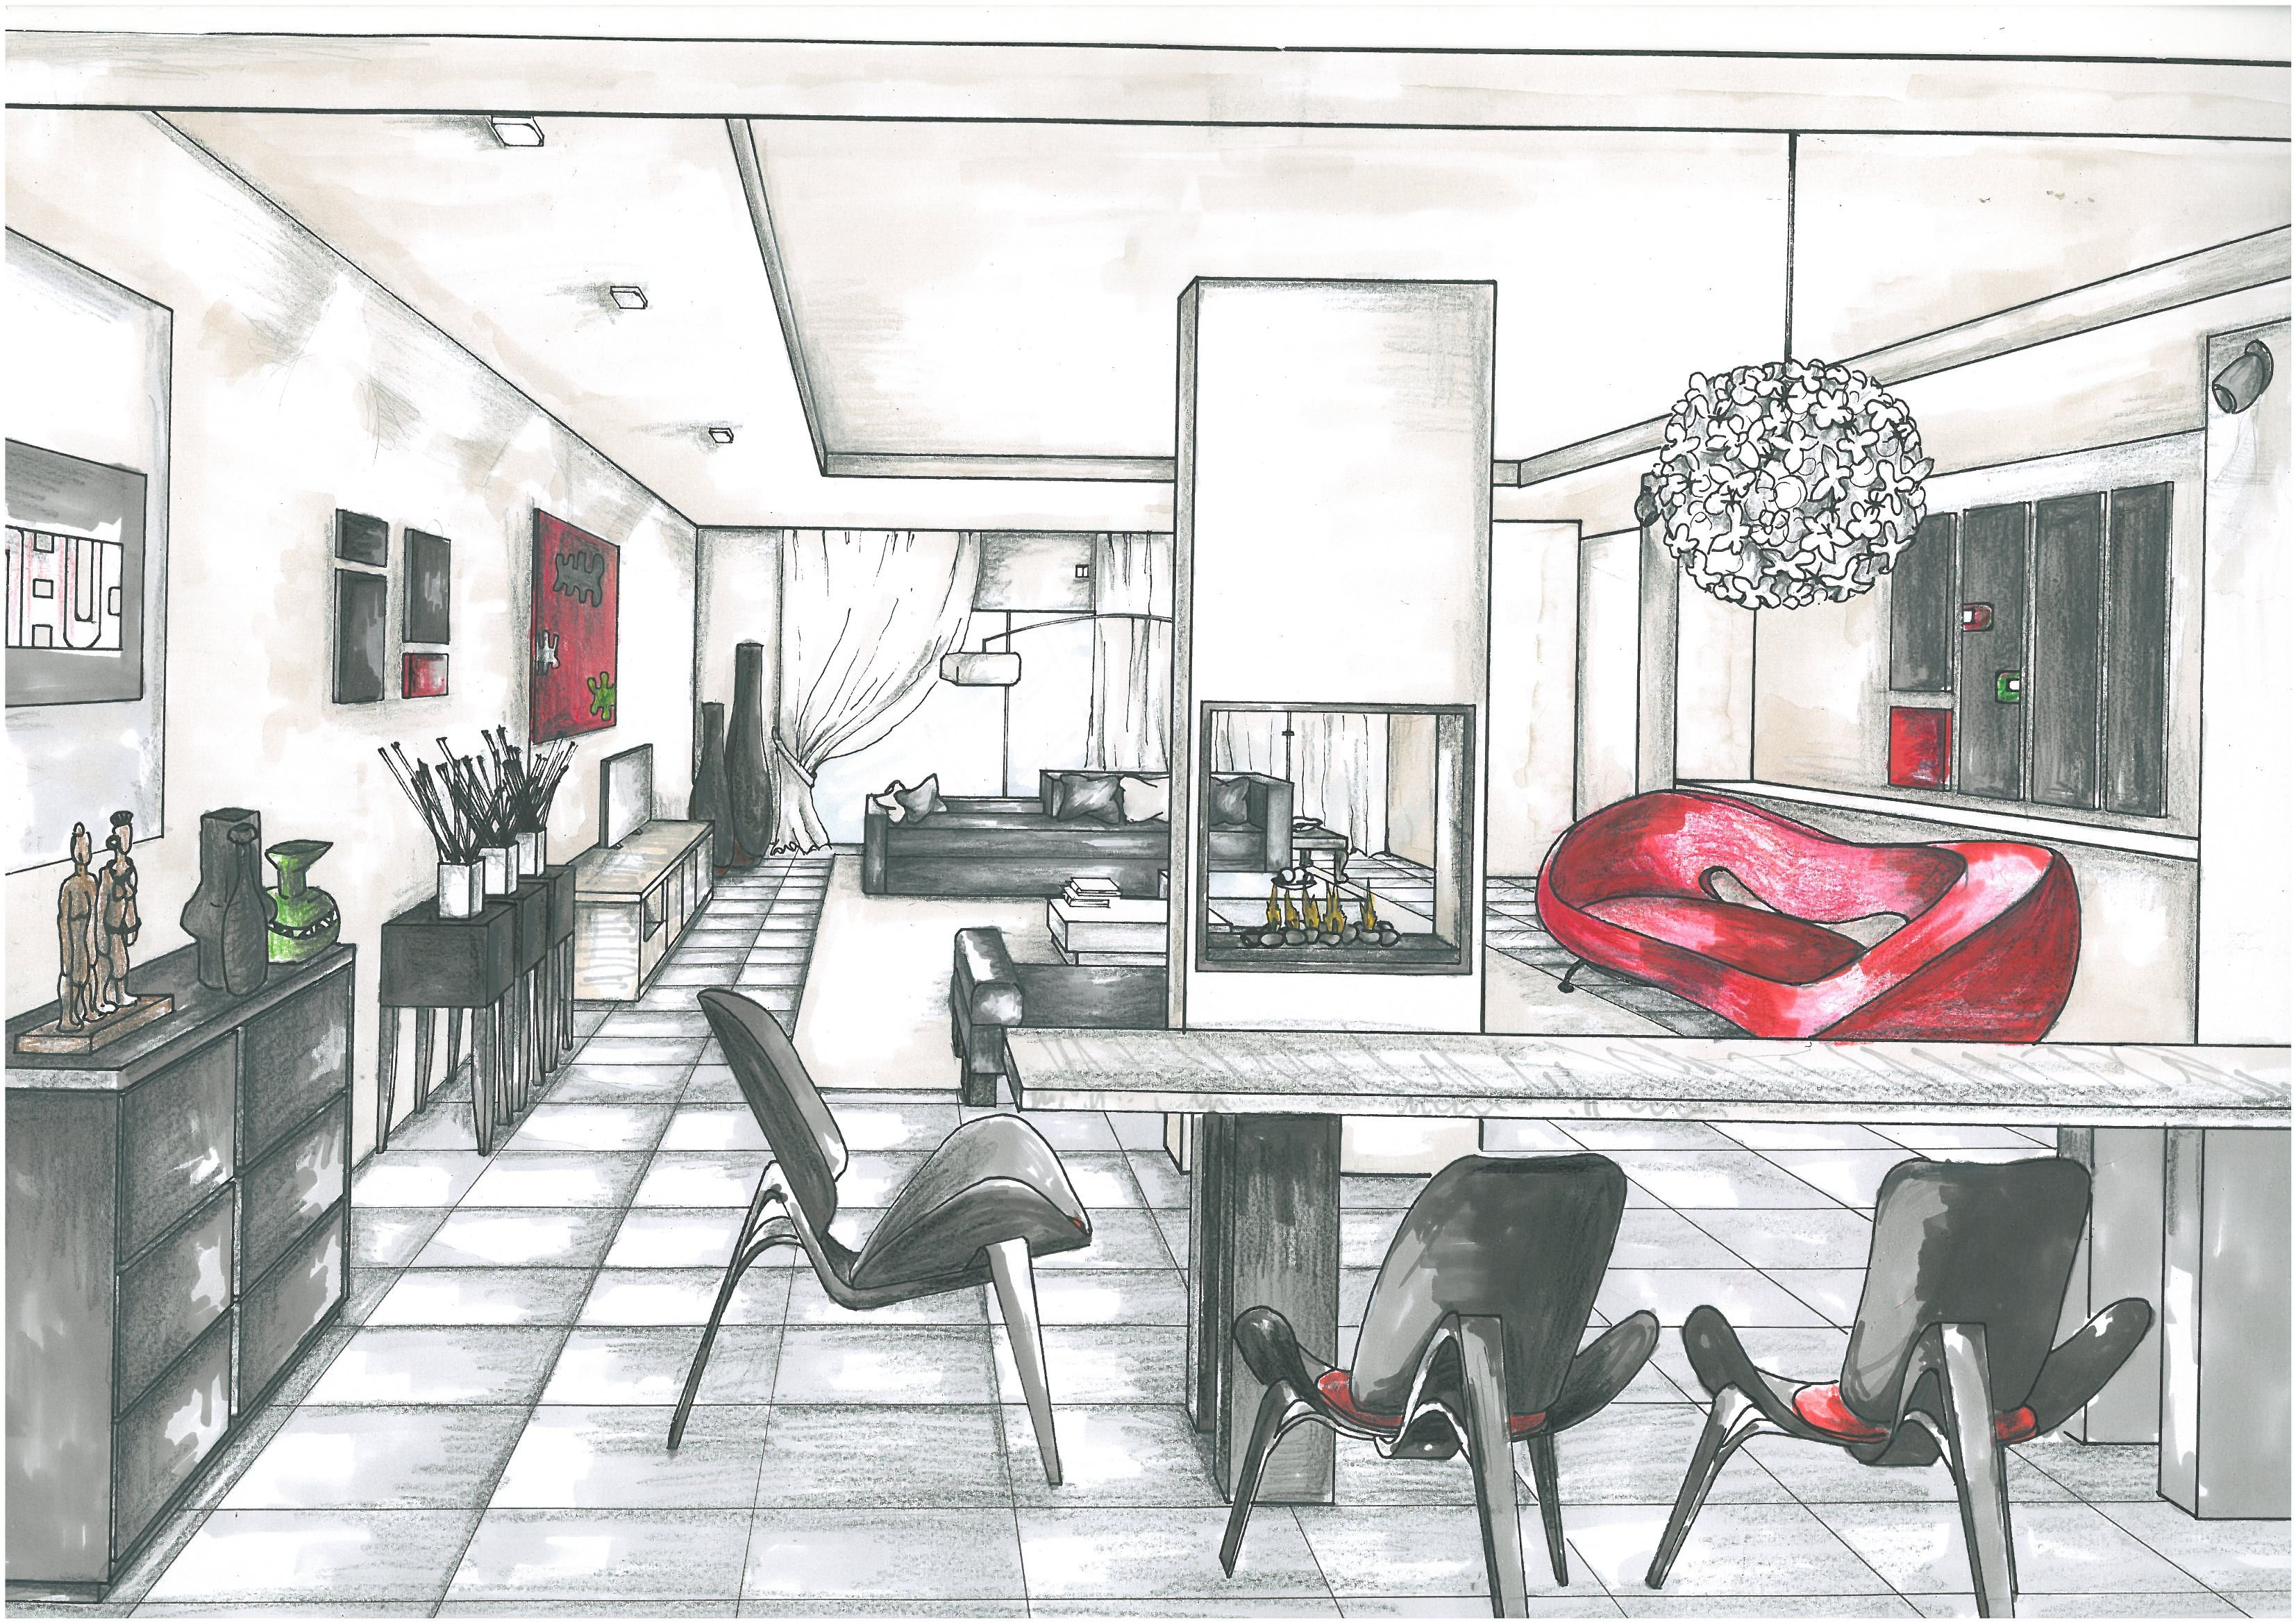 reception perspective drawing - Google Search | SKETCHES | Pinterest ...